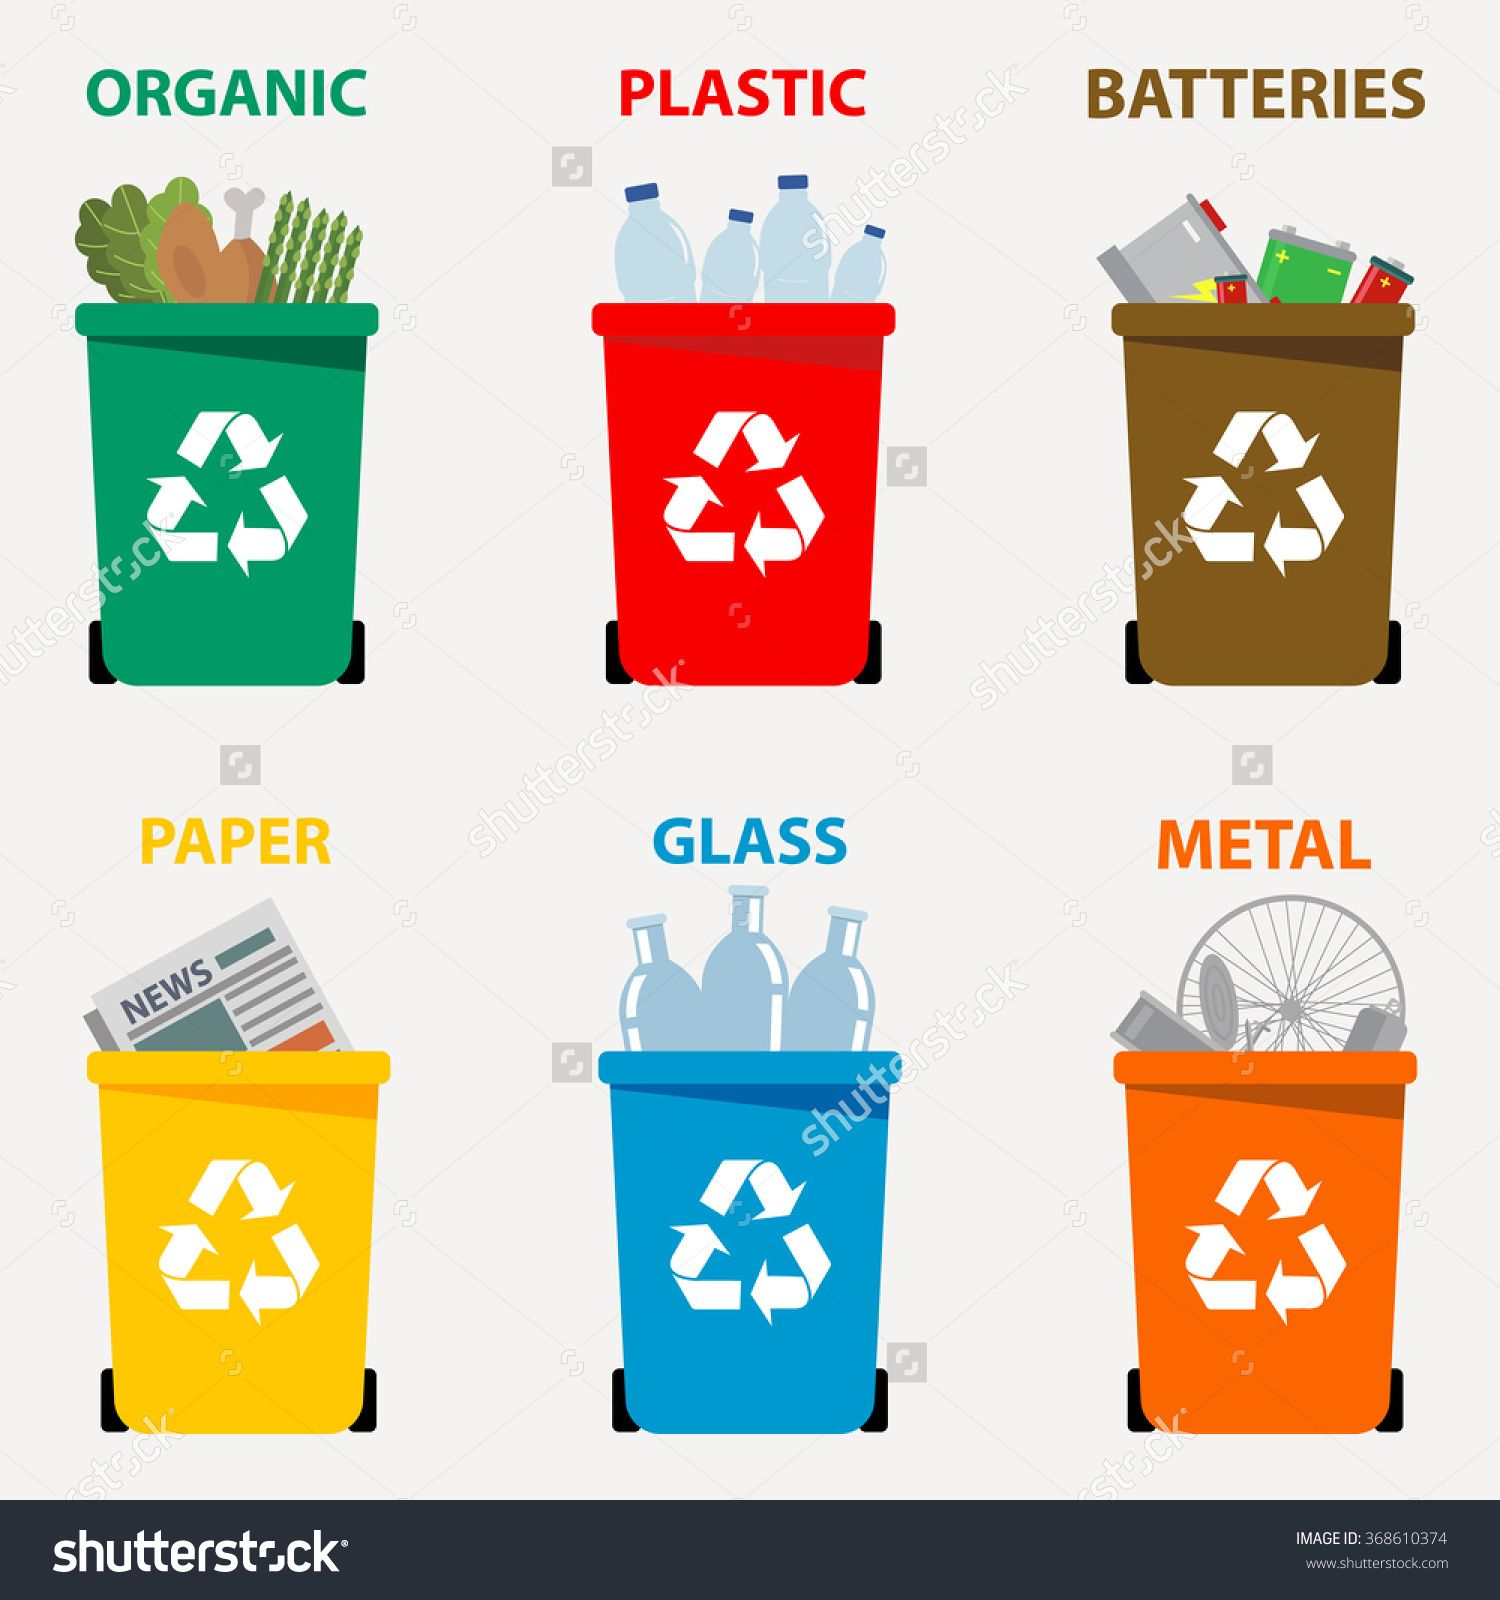 Recycling Recycling Color Chart Different Colored Recycle Waste Bins